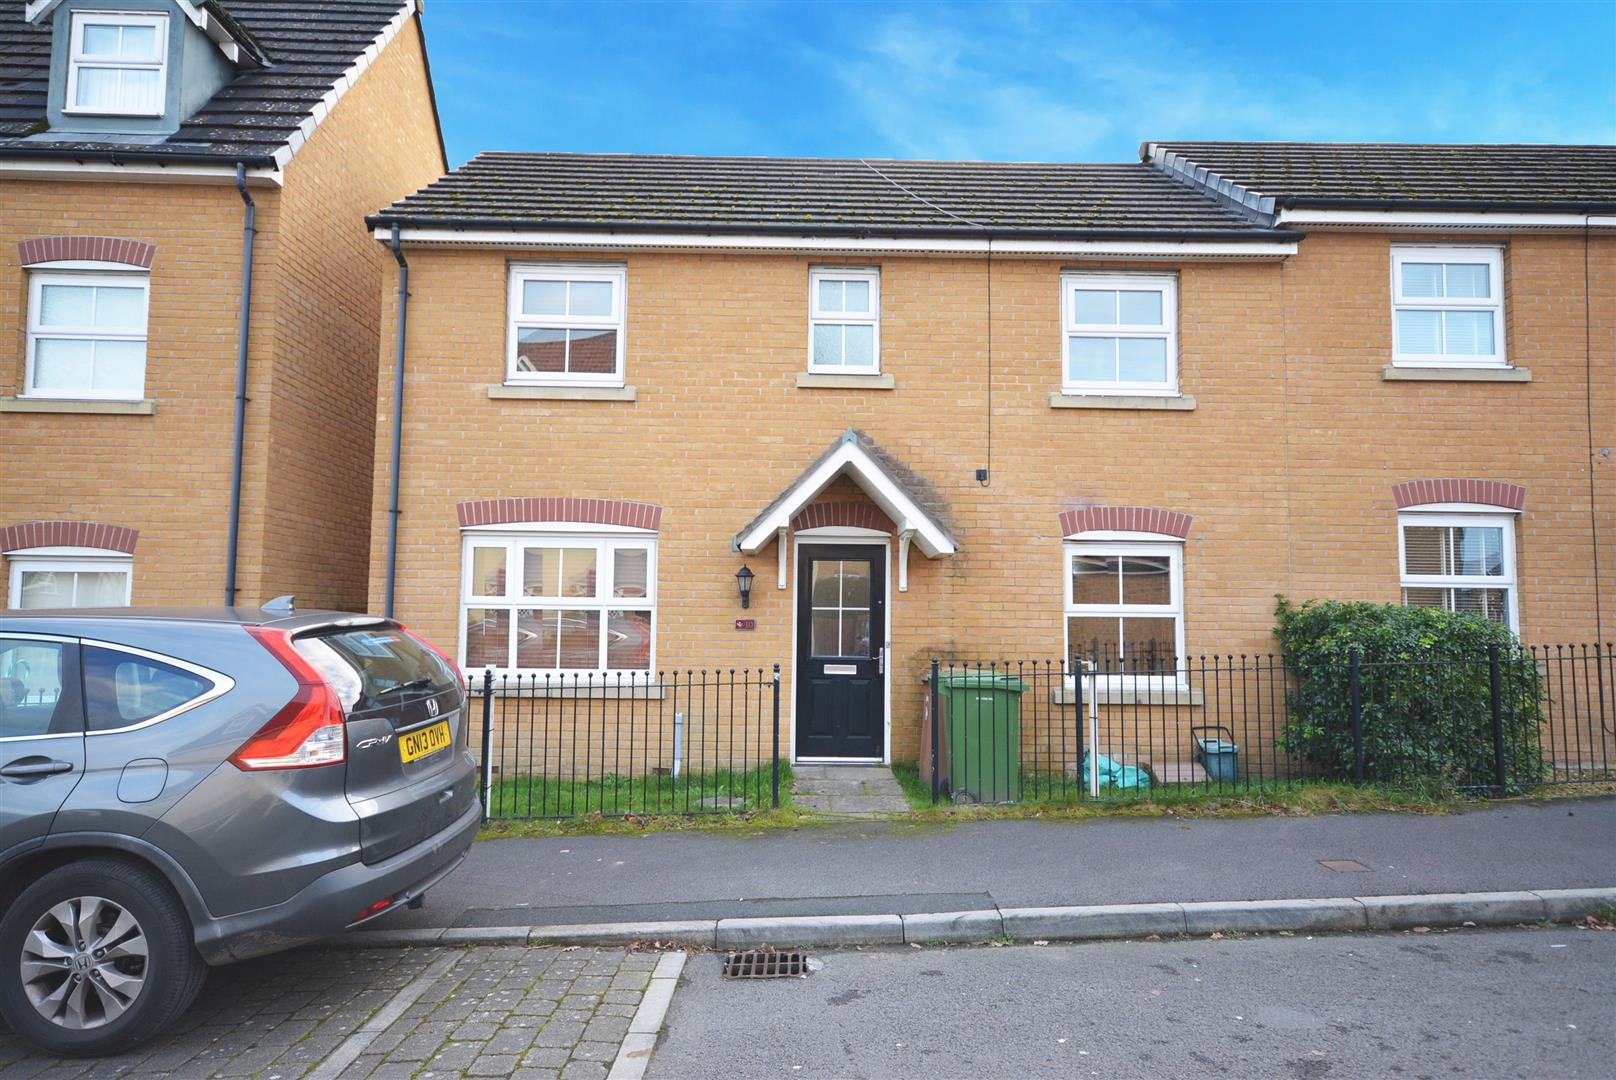 3 bed semi-detached house for sale in Red Kite Close, Hengoed  - Property Image 1